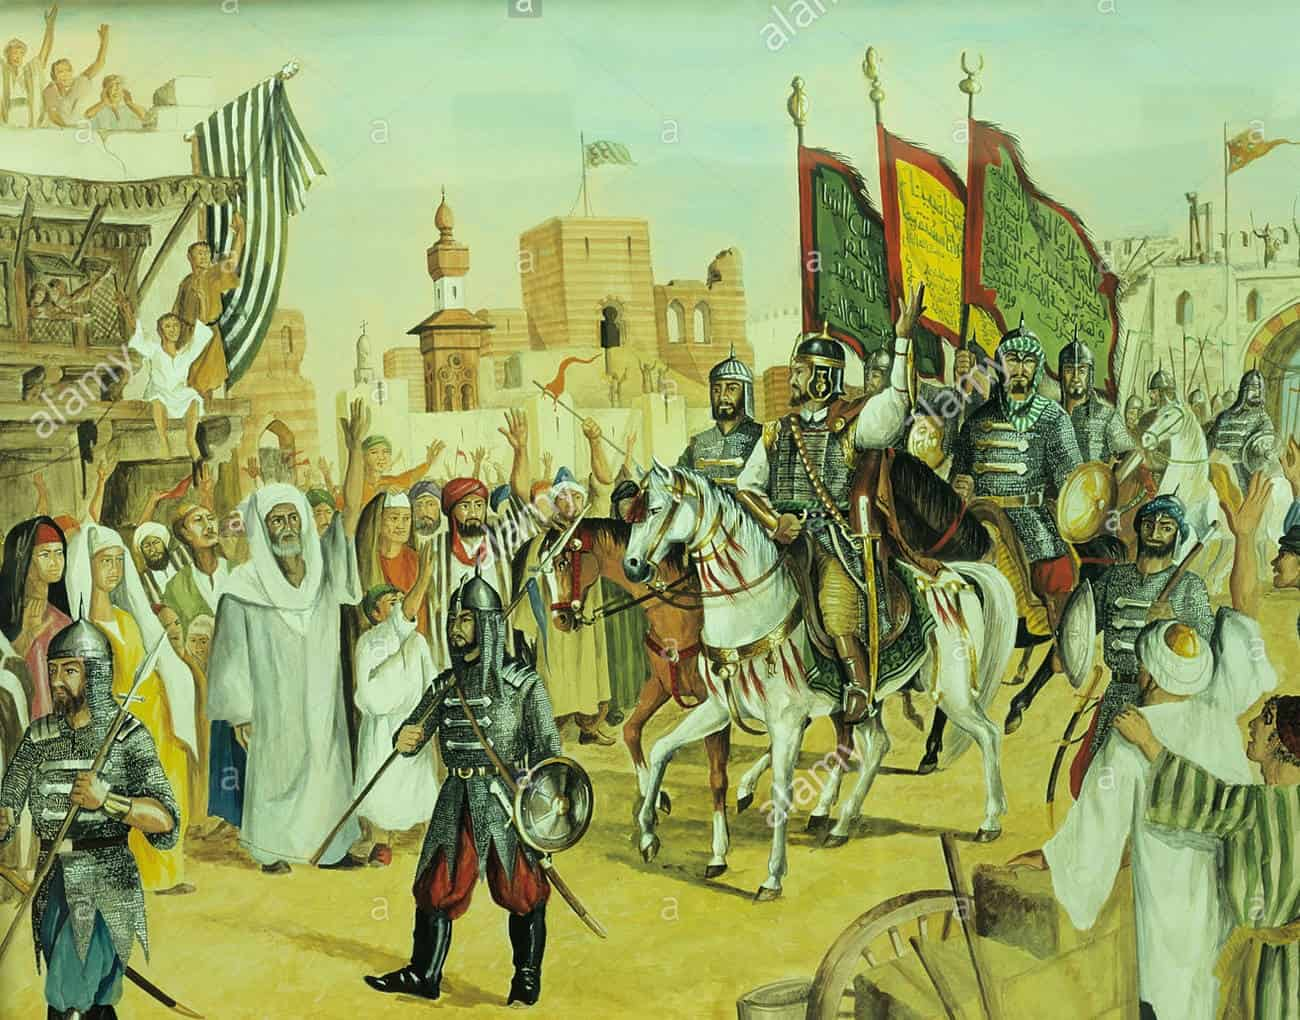 A 20th century depiction of Salahuddeen entering Jerusalem.